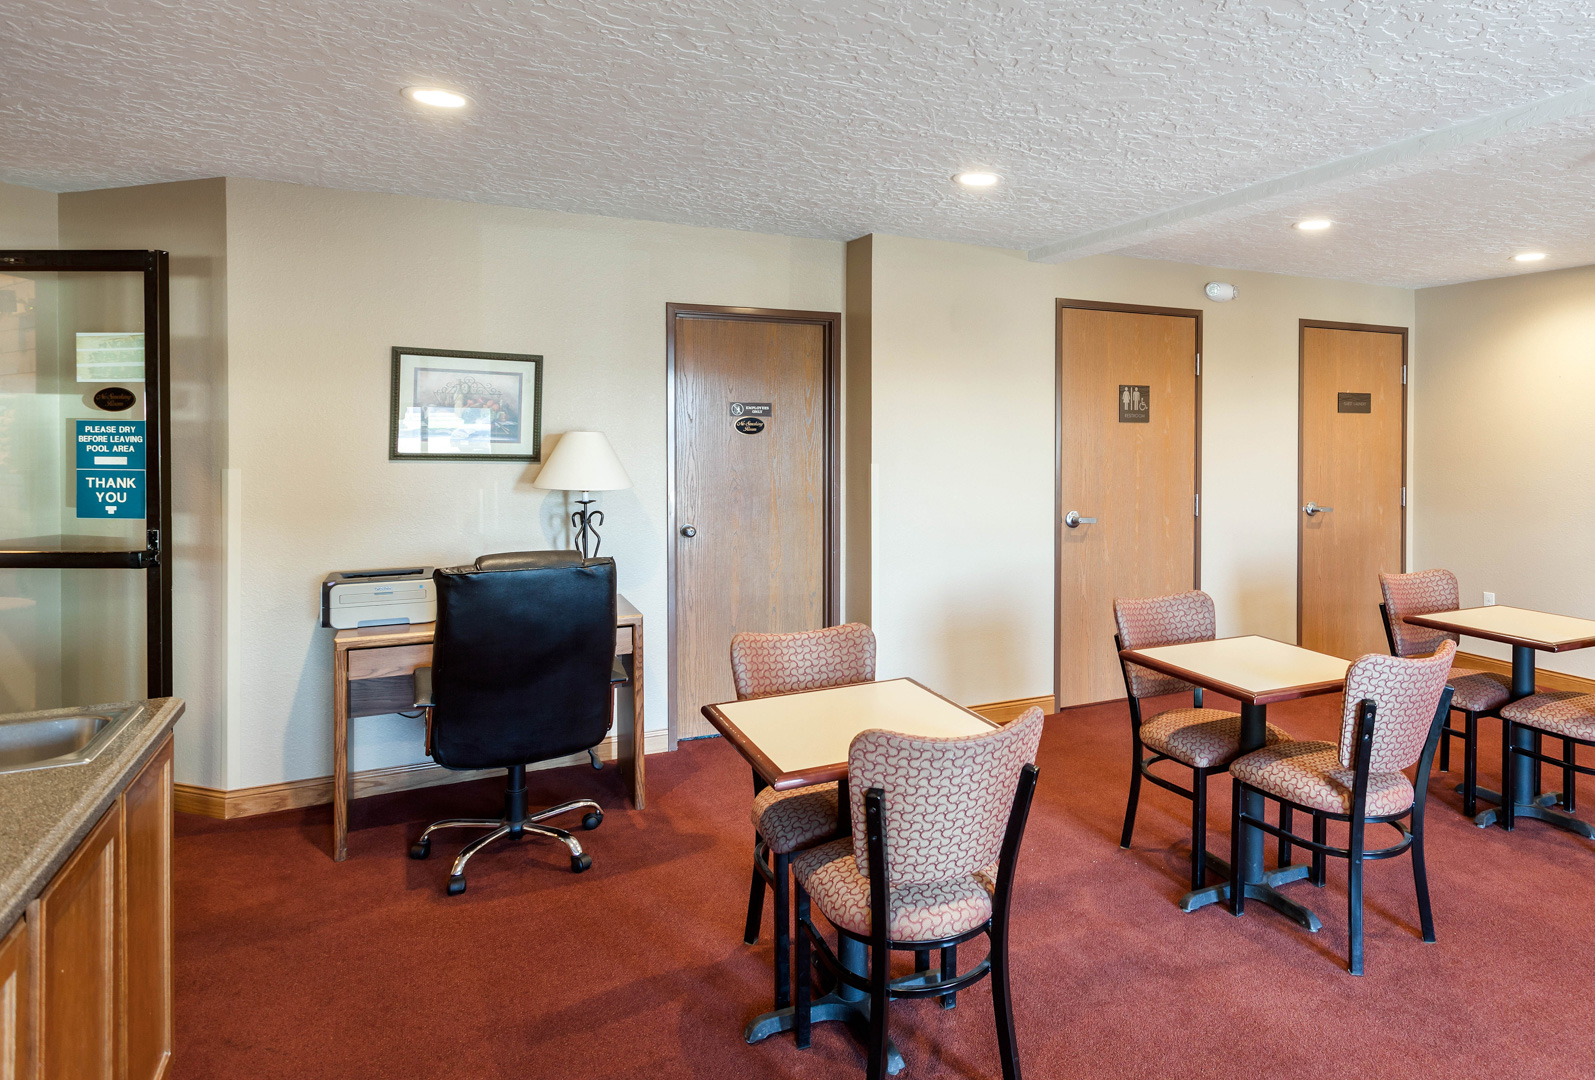 Comfort Inn, Lexington NE